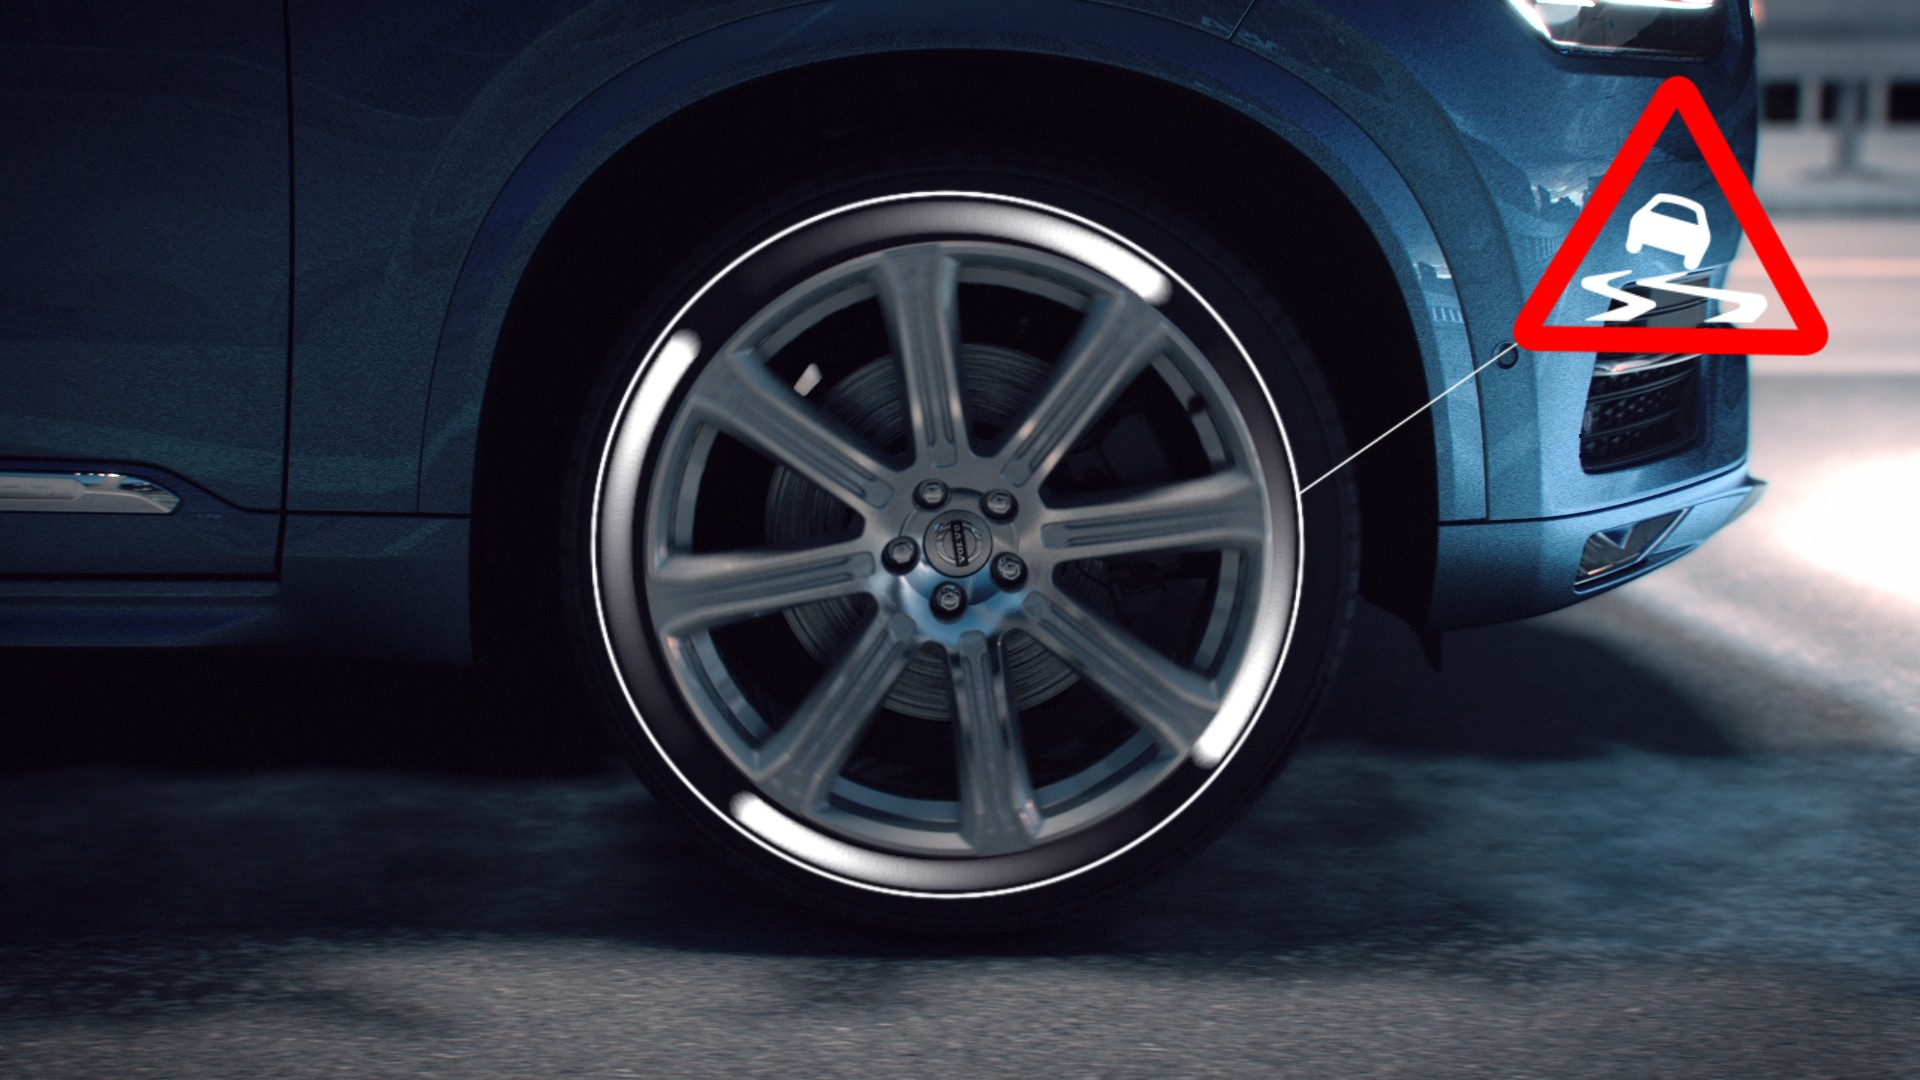 159530_Slippery_Road_Alert_technology_by_Volvo_Cars